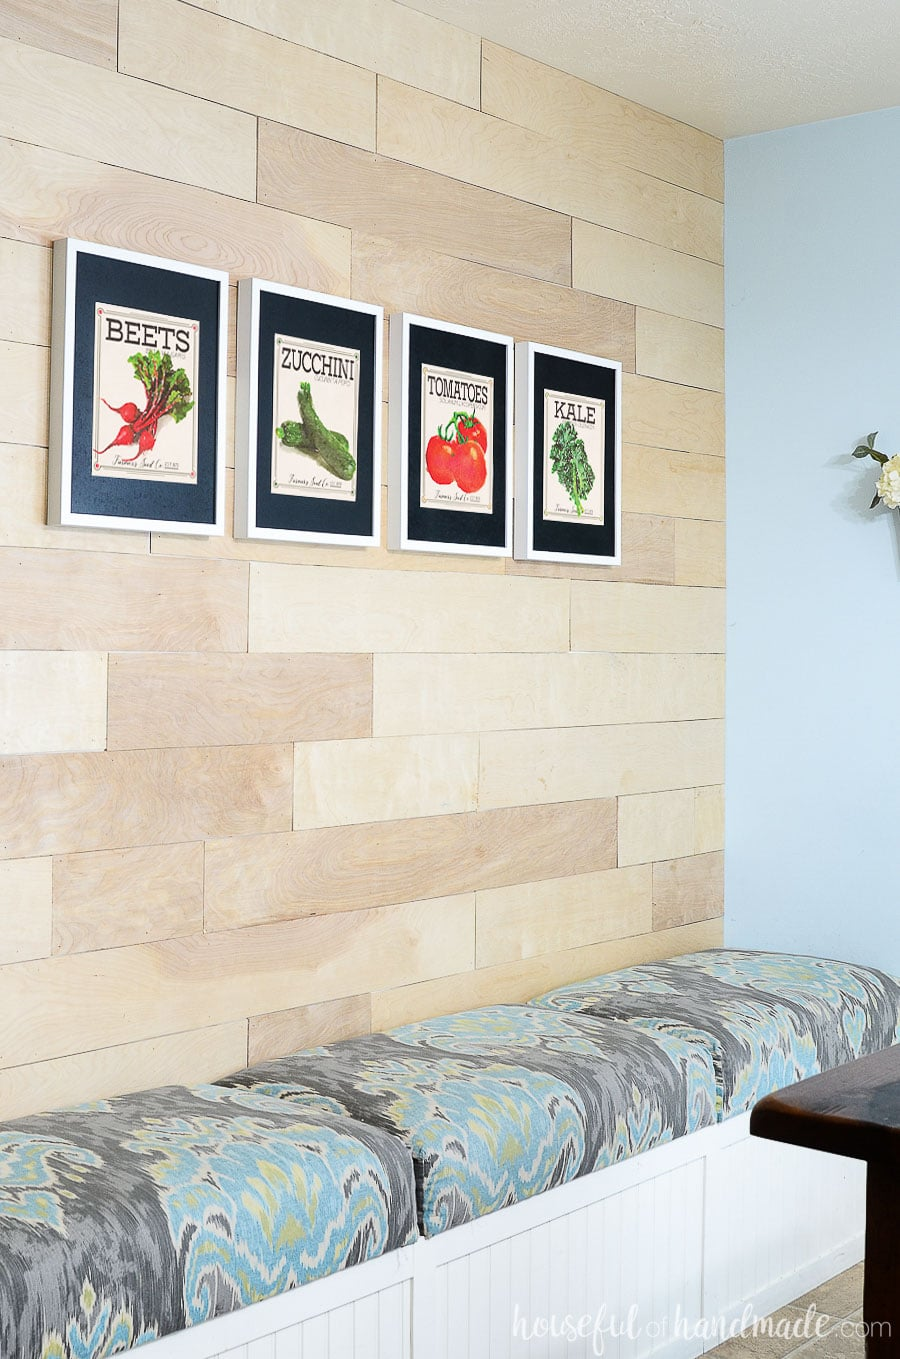 Wood wall with built in dining room bench and 4 vegetable seed packet art prints above it.